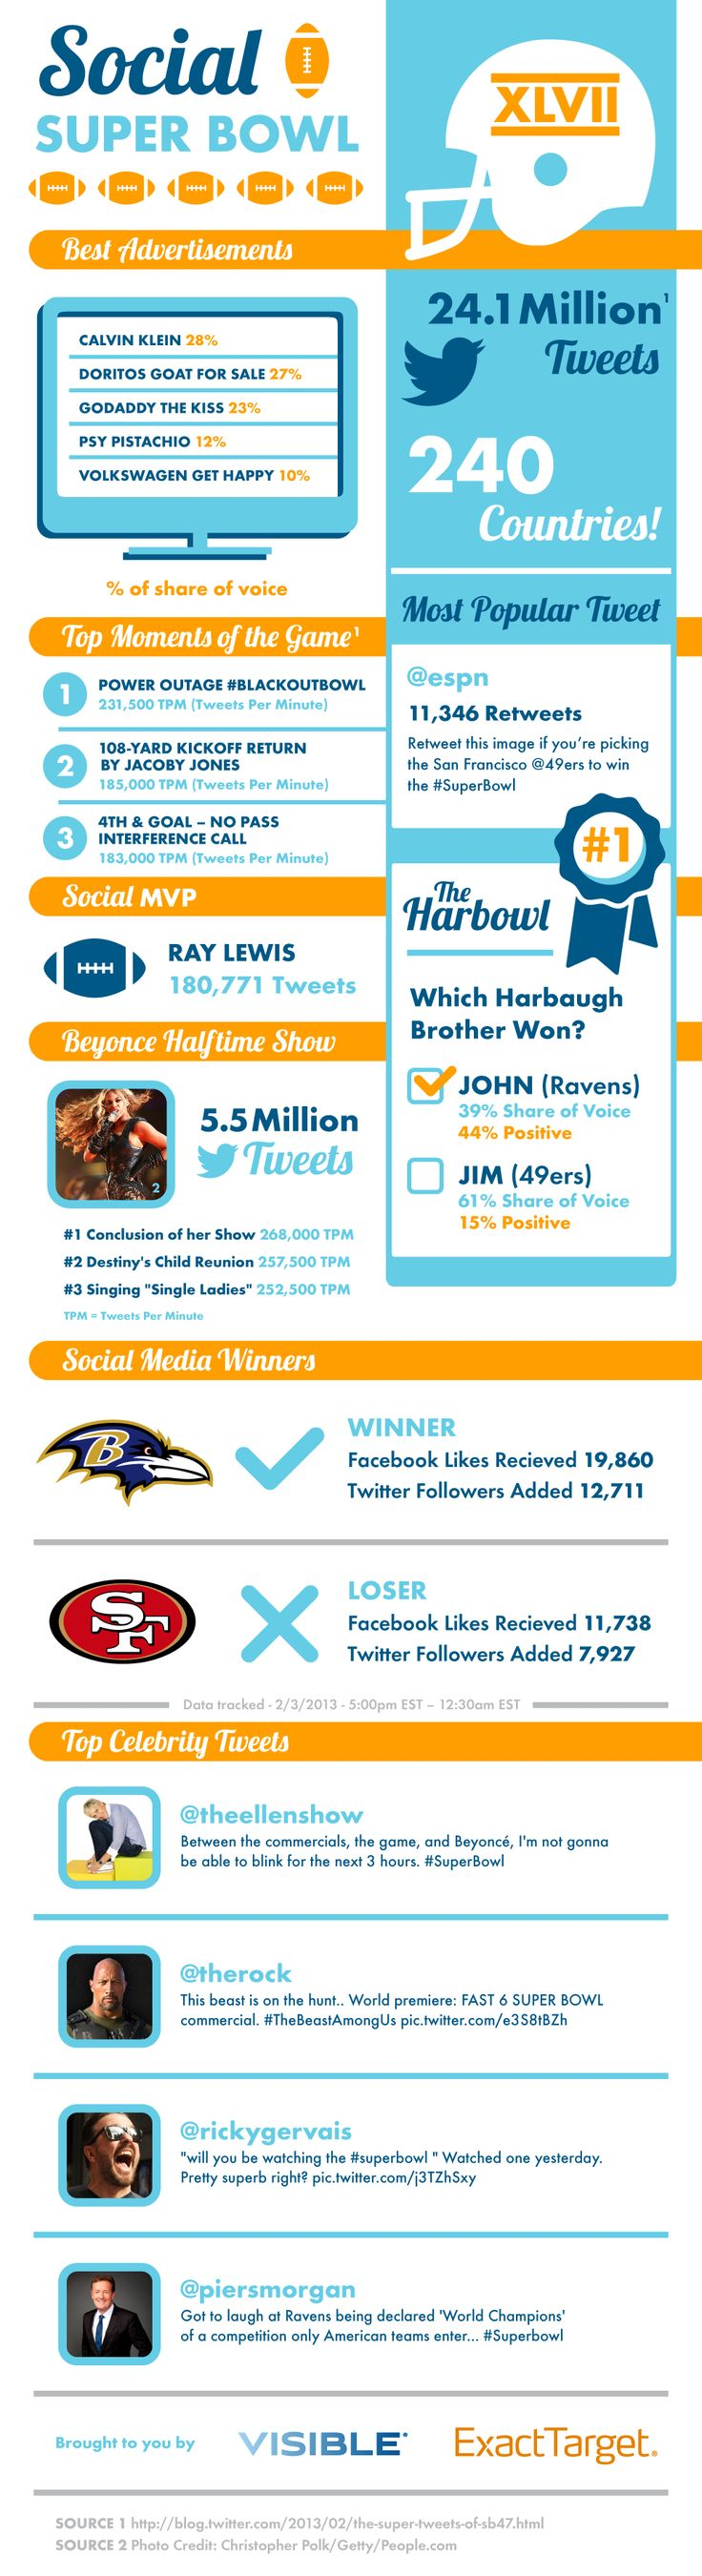 Infographic about Social Networking during the Super Bowl.